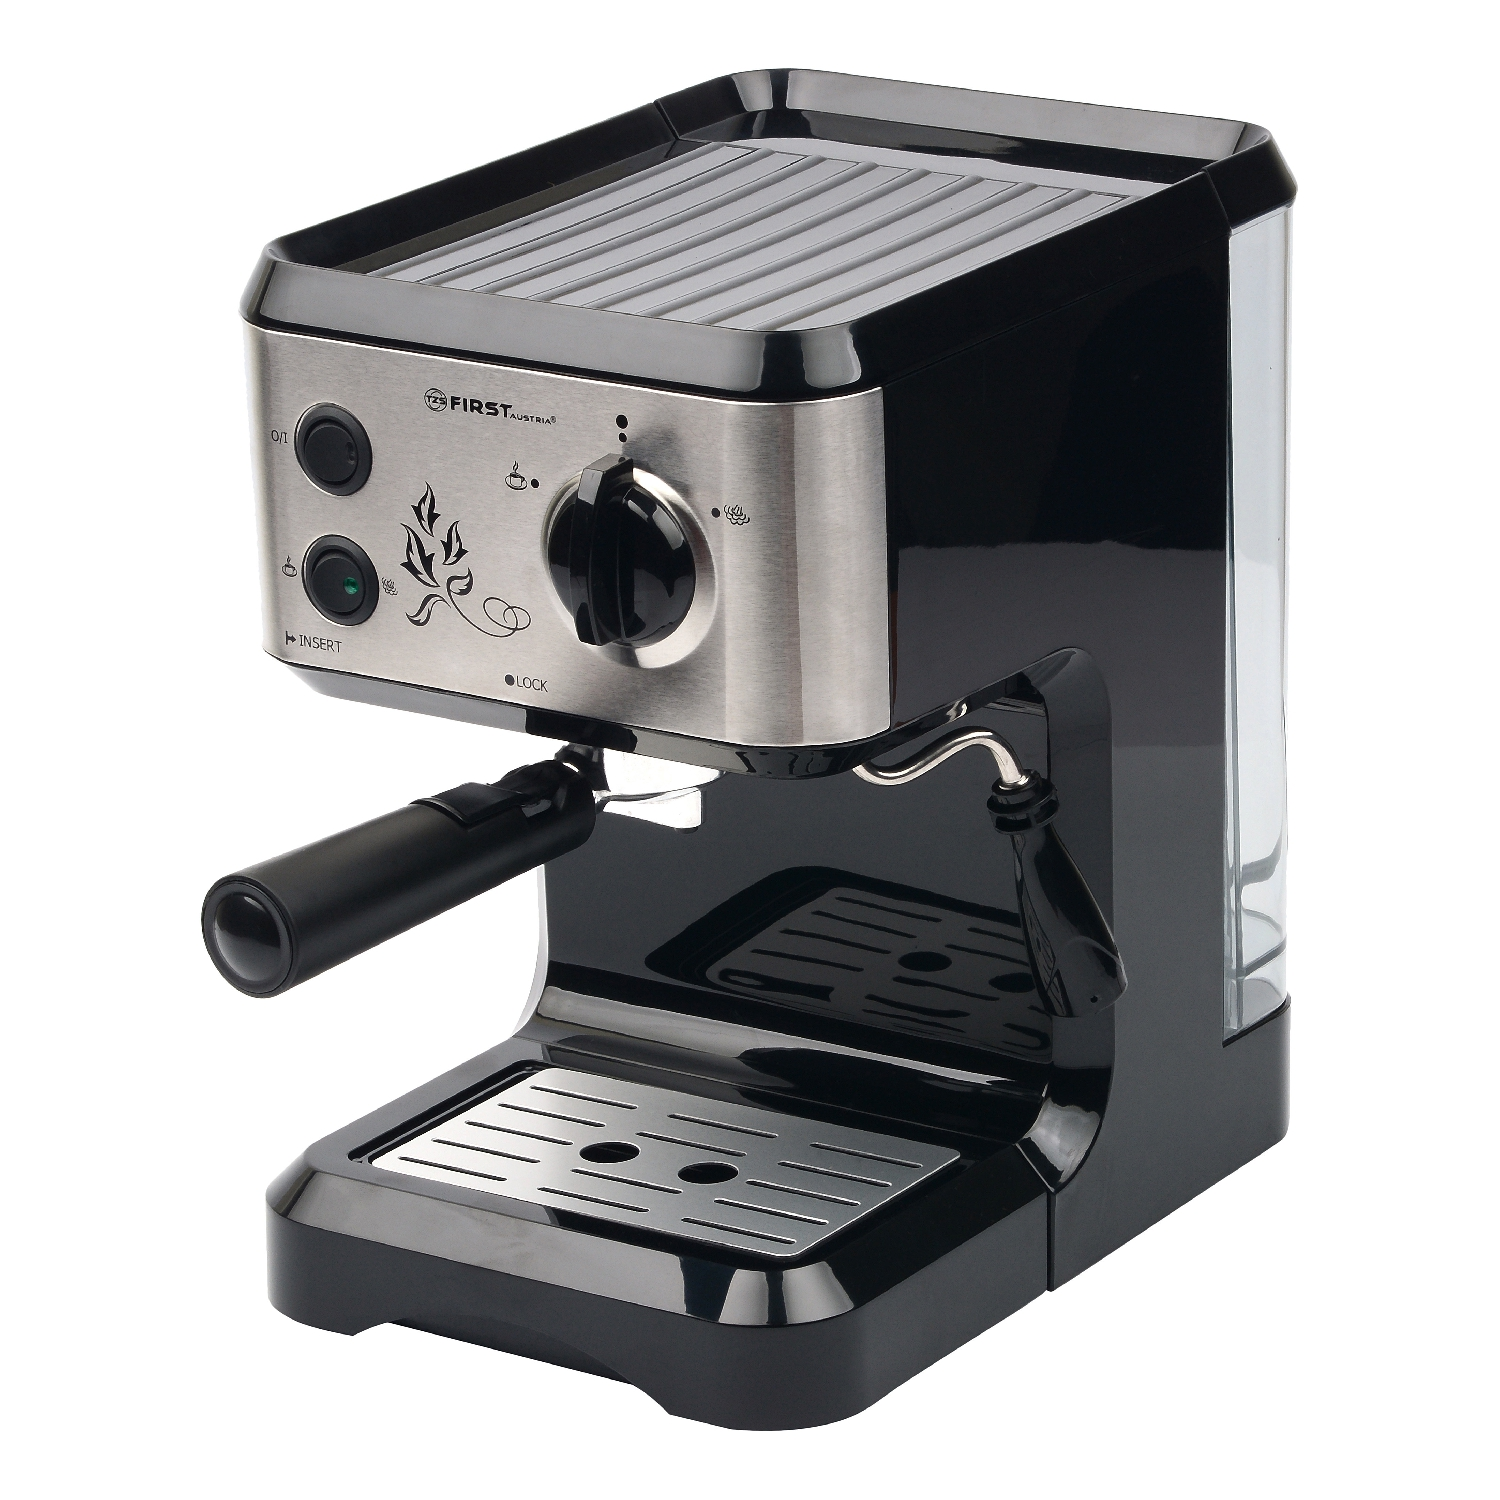 Coffee Maker FIRST FA-5476-1 Black (Рожковая semi automatic coffee machine, Espresso and Капуччино cooking, removable filter and kapuchinator) цена и фото